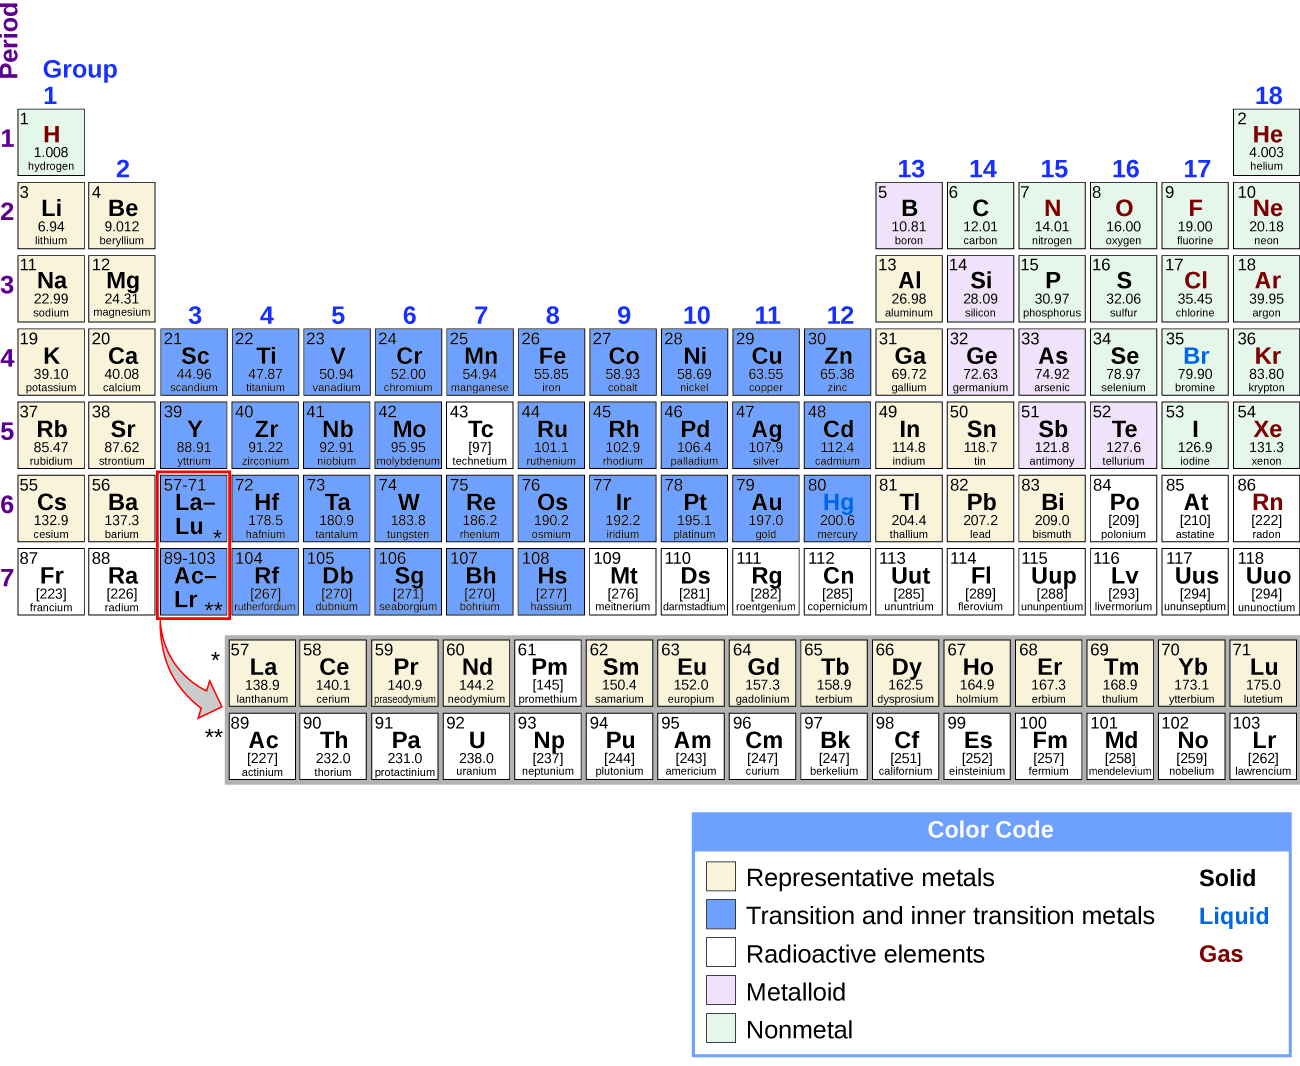 "The Periodic Table of Elements is shown. The 18 columns are labeled ""Group"" and the 7 rows are labeled ""Period."" Below the table to the right is a box labeled ""Color Code"" with different colors for representative metals, transition and inner transition metals, radioactive elements, metalloids, and nonmetals, as well as solids, liquids, and gases. Each element will be described in this order: atomic number; name; symbol; whether it is a representative metal, transition and inner transition metal, radioactive element, metalloid, or nonmetal; whether it is a solid, liquid, or gas; and atomic mass. Beginning at the top left of the table, or period 1, group 1, is a box containing ""1; hydrogen; H; nonmetal; gas; and 1.008."" There is only one other element box in period 1, group 18, which contains ""2; helium; H e; nonmetal; gas; and 4.003."" Period 2, group 1 contains ""3; lithium; L i; representative metal; solid; and 6.94"" Group 2 contains ""4; beryllium; B e; representative metal; solid; and 9.012."" Groups 3 through 12 are skipped and group 13 contains ""5; boron; B; metalloid; solid; 10.81."" Group 14 contains ""6; carbon; C; nonmetal; solid; and 12.01."" Group 15 contains ""7; nitrogen; N; nonmetal; gas; and 14.01."" Group 16 contains ""8; oxygen; O; nonmetal; gas; and 16.00."" Group 17 contains ""9; fluorine; F; nonmetal; gas; and 19.00."" Group 18 contains ""10; neon; N e; nonmetal; gas; and 20.18."" Period 3, group 1 contains ""11; sodium; N a; representative metal; solid; and 22.99."" Group 2 contains ""12; magnesium; M g; representative metal; solid; and 24.31."" Groups 3 through 12 are skipped again in period 3 and group 13 contains ""13; aluminum; A l; representative metal; solid; and 26.98."" Group 14 contains ""14; silicon; S i; metalloid; solid; and 28.09."" Group 15 contains ""15; phosphorous; P; nonmetal; solid; and 30.97."" Group 16 contains ""16; sulfur; S; nonmetal; solid; and 32.06."" Group 17 contains ""17; chlorine; C l; nonmetal; gas; and 35.45."" Group 18 contains ""18; argon; A r; nonmetal; gas; and 39.95."" Period 4, group 1 contains ""19; potassium; K; representative metal; solid; and 39.10."" Group 2 contains ""20; calcium; C a; representative metal; solid; and 40.08."" Group 3 contains ""21; scandium; S c; transition and inner transition metal; solid; and 44.96."" Group 4 contains ""22; titanium; T i; transition and inner transition metal; solid; and 47.87."" Group 5 contains ""23; vanadium; V; transition and inner transition metal; solid; and 50.94."" Group 6 contains ""24; chromium; C r; transition and inner transition metal; solid; and 52.00."" Group 7 contains ""25; manganese; M n; transition and inner transition metal; solid; and 54.94."" Group 8 contains ""26; iron; F e; transition and inner transition metal; solid; and 55.85."" Group 9 contains ""27; cobalt; C o; transition and inner transition metal; solid; and 58.93."" Group 10 contains ""28; nickel; N i; transition and inner transition metal; solid; and 58.69."" Group 11 contains ""29; copper; C u; transition and inner transition metal; solid; and 63.55."" Group 12 contains ""30; zinc; Z n; transition and inner transition metal; solid; and 65.38."" Group 13 contains ""31; gallium; G a; representative metal; solid; and 69.72."" Group 14 contains ""32; germanium; G e; metalloid; solid; and 72.63."" Group 15 contains ""33; arsenic; A s; metalloid; solid; and 74.92."" Group 16 contains ""34; selenium; S e; nonmetal; solid; and 78.97."" Group 17 contains ""35; bromine; B r; nonmetal; liquid; and 79.90."" Group 18 contains ""36; krypton; K r; nonmetal; gas; and 83.80."" Period 5, group 1 contains ""37; rubidium; R b; representative metal; solid; and 85.47."" Group 2 contains ""38; strontium; S r; representative metal; solid; and 87.62."" Group 3 contains ""39; yttrium; Y; transition and inner transition metal; solid; and 88.91."" Group 4 contains ""40; zirconium; Z r; transition and inner transition metal; solid; and 91.22."" Group 5 contains ""41; niobium; N b; transition and inner transition metal; solid; and 92.91."" Group 6 contains ""42; molybdenum; M o; transition and inner transition metal; solid; and 95.95."" Group 7 contains ""43; technetium; T c; radioactive element; solid; and 97."" Group 8 contains ""44; ruthenium; R u; transition and inner transition metal; solid; and 101.1."" Group 9 contains ""45; rhodium; R h; transition and inner transition metal; solid; and 102.9."" Group 10 contains ""46; palladium; P d; transition and inner transition metal; solid; and 106.4."" Group 11 contains ""47; silver; A g; transition and inner transition metal; solid; and 107.9."" Group 12 contains ""48; cadmium; C d; transition and inner transition metal; solid; and 112.4."" Group 13 contains ""49; indium; I n; representative metal; solid; and 114.8."" Group 14 contains ""50; tin; S n; representative metal; solid; and 118.7."" Group 15 contains ""51; antimony; S b; metalloid; solid; and 121.8."" Group 16 contains ""52; tellurium; T e; metalloid; solid; and 127.6."" Group 17 contains ""53; iodine; I; nonmetal; solid; and 126.9."" Group 18 contains ""54; xenon; X e; nonmetal; gas; and 131.3."" Period 6, group 1 contains ""55; cesium; C s; representative metal; solid; and 132.9."" Group 2 contains ""56; barium; B a; representative metal; solid; and 137.3."" Group 3 breaks the pattern. The box has a large arrow pointing to a row of elements below the table with atomic numbers ranging from 57-71. In sequential order by atomic number, the first box in this row contains ""57; lanthanum; L a; representative metal; solid; and 138.9."" To its right, the next is ""58; cerium; C e; representative metal; solid; and 140.1."" Next is ""59; praseodymium; P r; representative metal; solid; and 140.9."" Next is ""60; neodymium; N d; representative metal; solid; and 144.2."" Next is ""61; promethium; P m; radioactive element; solid; and 145."" Next is ""62; samarium; S m; representative metal; solid; and 150.4."" Next is ""63; europium; E u; representative metal; solid; and 152.0."" Next is ""64; gadolinium; G d; representative metal; solid; and 157.3."" Next is ""65; terbium; T b; representative metal; solid; and 158.9."" Next is ""66; dysprosium; D y; representative metal; solid; and 162.5."" Next is ""67; holmium; H o; representative metal; solid; and 164.9."" Next is ""68; erbium; E r; representative metal; solid; and 167.3."" Next is ""69; thulium; T m; representative metal; solid; and 168.9."" Next is ""70; ytterbium; Y b; representative metal; solid; and 173.1."" The last in this special row is ""71; lutetium; L u; representative metal; solid; and 175.0."" Continuing in period 6, group 4 contains ""72; hafnium; H f; transition and inner transition metal; solid; and 178.5."" Group 5 contains ""73; tantalum; T a; transition and inner transition metal; solid; and 180.9."" Group 6 contains ""74; tungsten; W; transition and inner transition metal; solid; and 183.8."" Group 7 contains ""75; rhenium; R e; transition and inner transition metal; solid; and 186.2."" Group 8 contains ""76; osmium; O s; transition and inner transition metal; solid; and 190.2."" Group 9 contains ""77; iridium; I r; transition and inner transition metal; solid; and 192.2."" Group 10 contains ""78; platinum; P t; transition and inner transition metal; solid; and 195.1."" Group 11 contains ""79; gold; A u; transition and inner transition metal; solid; and 197.0."" Group 12 contains ""80; mercury; H g; transition and inner transition metal; liquid; and 200.6."" Group 13 contains ""81; thallium; T l; representative metal; solid; and 204.4."" Group 14 contains ""82; lead; P b; representative metal; solid; and 207.2."" Group 15 contains ""83; bismuth; B i; representative metal; solid; and 209.0."" Group 16 contains ""84; polonium; P o; radioactive element; solid; and 209."" Group 17 contains ""85; astatine; A t; radioactive element; solid; and 210."" Group 18 contains ""86; radon; R n; radioactive element; gas; and 222."" Period 7, group 1 contains ""87; francium; F r; radioactive element; solid; and 223."" Group 2 contains ""88; radium; R a; radioactive element; solid; and 226."" Group 3 breaks the pattern much like what occurs in period 6. A large arrow points from the box in period 7, group 3 to a special row containing the elements with atomic numbers ranging from 89-103, just below the row which contains atomic numbers 57-71. In sequential order by atomic number, the first box in this row contains ""89; actinium; A c; radioactive element; solid; and 227."" To its right, the next is ""90; thorium; T h; radioactive element; solid; and 232.0."" Next is ""91; protactinium; P a; radioactive element; solid; and 231.0."" Next is ""92; uranium; U; radioactive element; solid; and 238.0."" Next is ""93; neptunium; N p; radioactive element; solid; and N p."" Next is ""94; plutonium; P u; radioactive element; solid; and 244."" Next is ""95; americium; A m; radioactive element; solid; and 243."" Next is ""96; curium; C m; radioactive element; solid; and 247."" Next is ""97; berkelium; B k; radioactive element; solid; and 247."" Next is ""98; californium; C f; radioactive element; solid; and 251."" Next is ""99; einsteinium; E s; radioactive element; solid; and 252."" Next is ""100; fermium; F m; radioactive element; solid; and 257."" Next is ""101; mendelevium; M d; radioactive element; solid; and 258."" Next is ""102; nobelium; N o; radioactive element; solid; and 259."" The last in this special row is ""103; lawrencium; L r; radioactive element; solid; and 262."" Continuing in period 7, group 4 contains ""104; rutherfordium; R f; transition and inner transition metal; solid; and 267."" Group 5 contains ""105; dubnium; D b; transition and inner transition metal; solid; and 270."" Group 6 contains ""106; seaborgium; S g; transition and inner transition metal; solid; and 271."" Group 7 contains ""107; bohrium; B h; transition and inner transition metal; solid; and 270."" Group 8 contains ""108; hassium; H s; transition and inner transition metal; solid; and 277."" Group 9 contains ""109; meitnerium; M t; radioactive element; solid; and 276."" Group 10 contains ""110; darmstadtium; D s; radioactive element; solid; and 281."" Group 11 contains ""111; roentgenium; R g; radioactive element; solid; and 282."" Group 12 contains ""112; copernicium; C n; radioactive element; liquid; and 285."" Group 13 contains ""113; ununtrium; U u t; radioactive element; solid; and 285."" Group 14 contains ""114; flerovium; F l; radioactive element; solid; and 289."" Group 15 contains ""115; ununpentium; U u p; radioactive element; solid; and 288."" Group 16 contains ""116; livermorium; L v; radioactive element; solid; and 293."" Group 17 contains ""117; ununseptium; U u s; radioactive; solid; and 294."" Group 18 contains ""118; ununoctium; U u o; radioactive element; solid; and 294."""